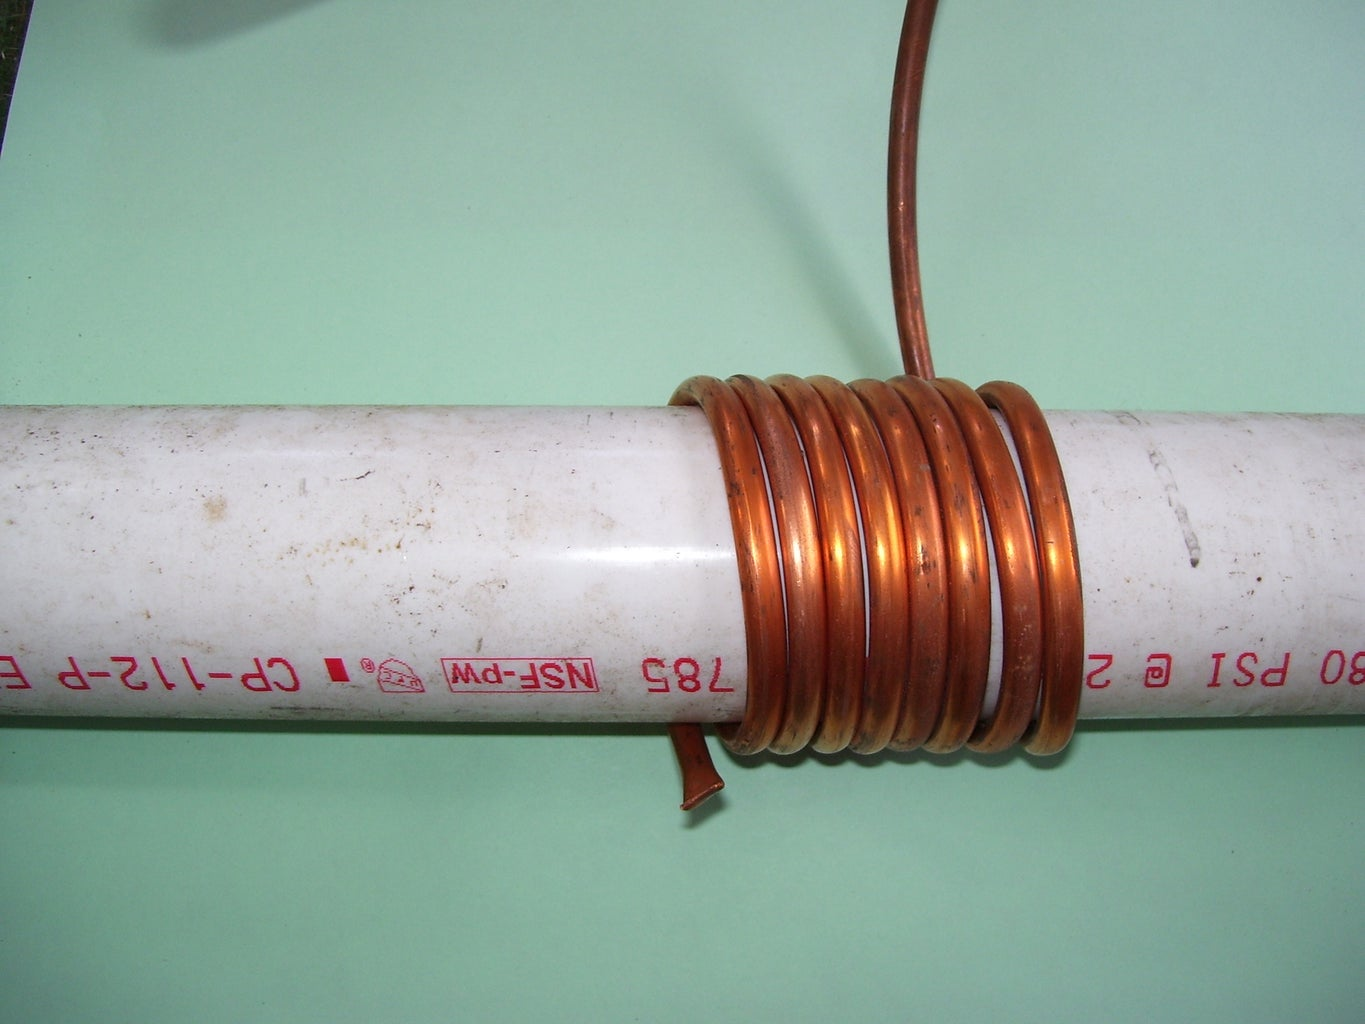 Coiling the Copper